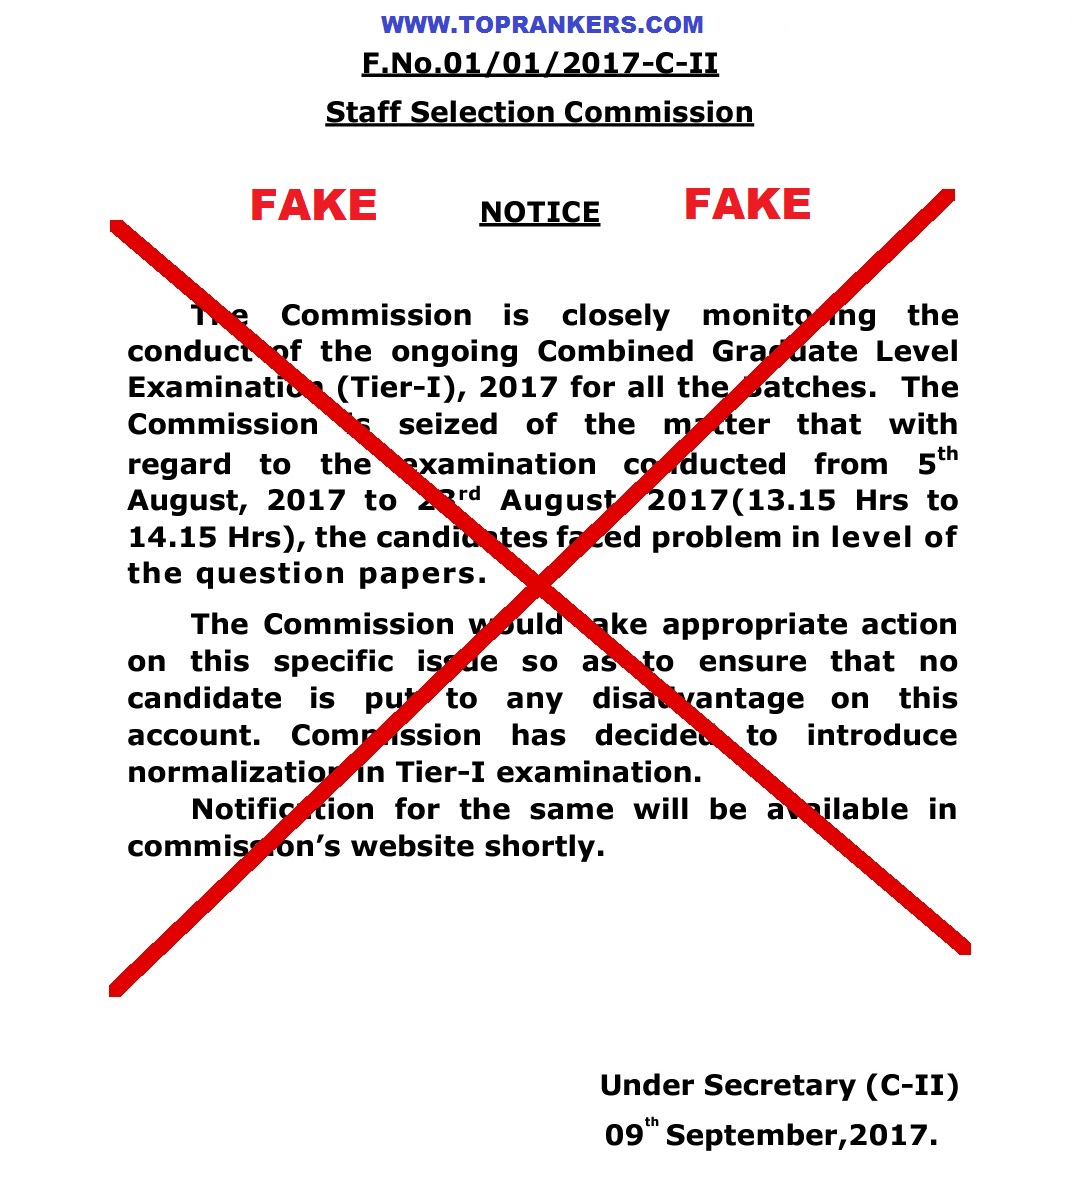 There have been fake notice circulating on social media and other websites regarding the Normalisation of SSC CGL 2017 Examination.